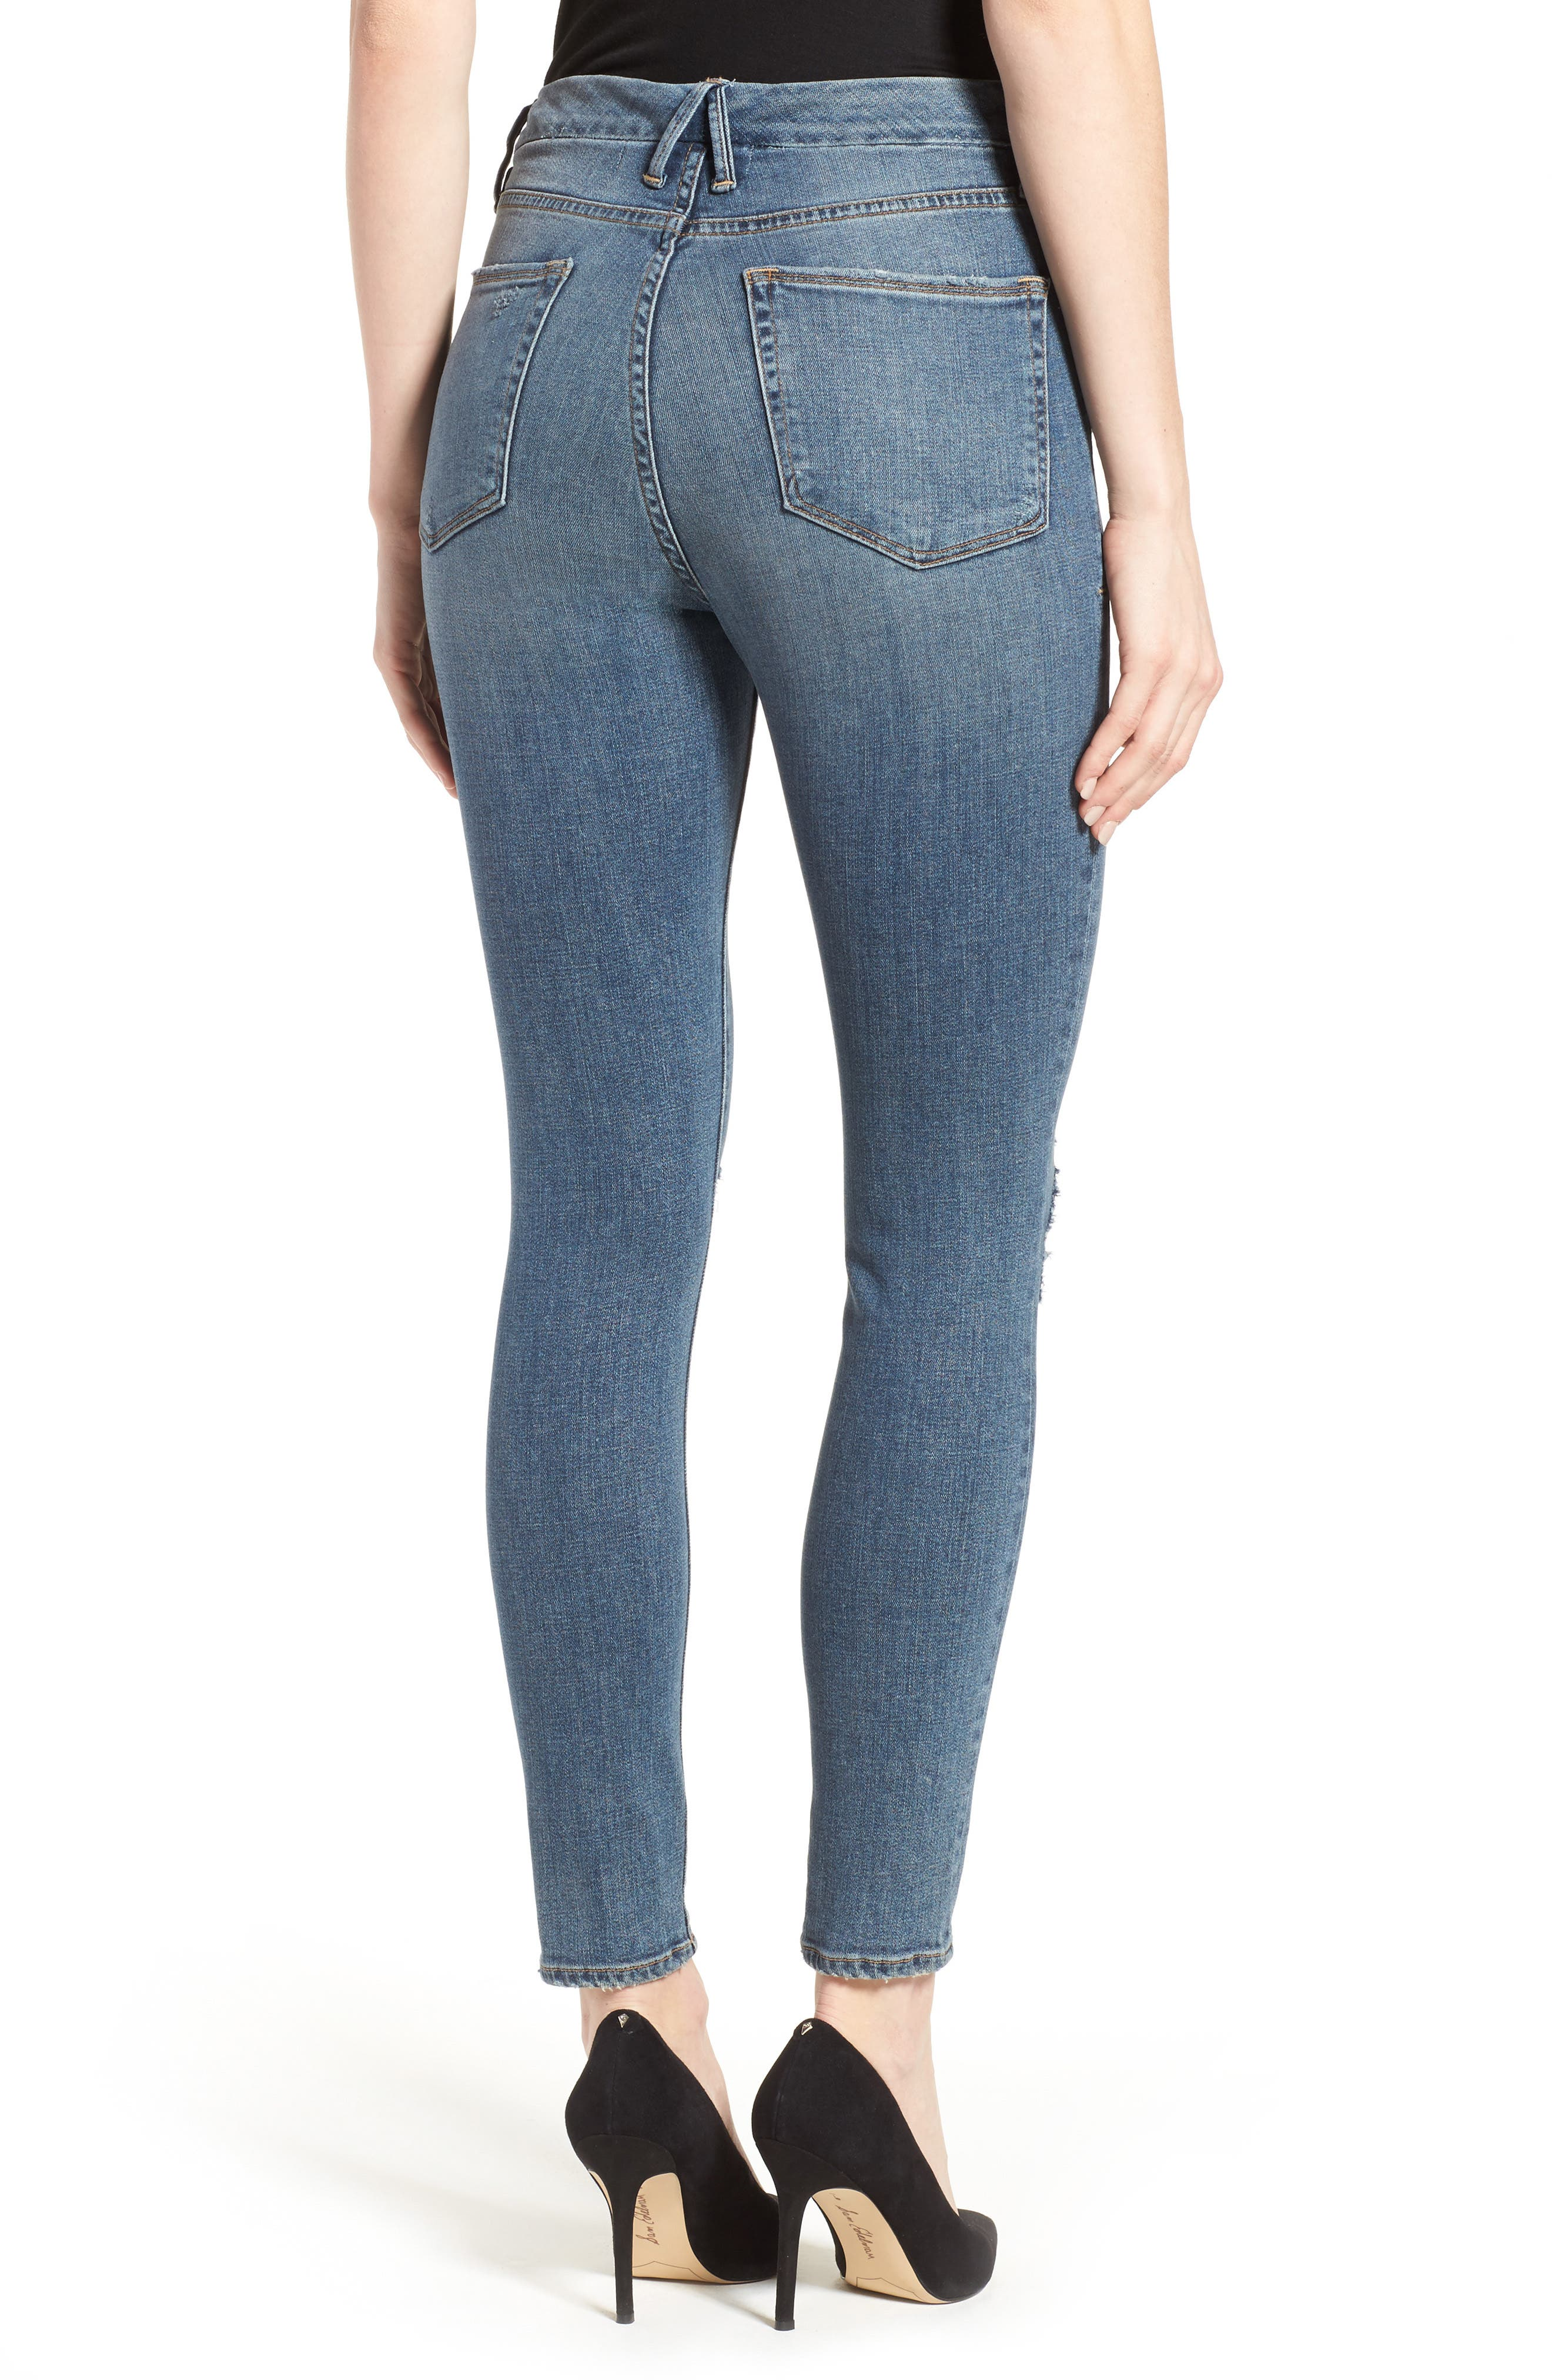 Alternate Image 3  - Good American Good Waist High Waist Ripped Skinny Jeans (Blue 026) (Extended Sizes)